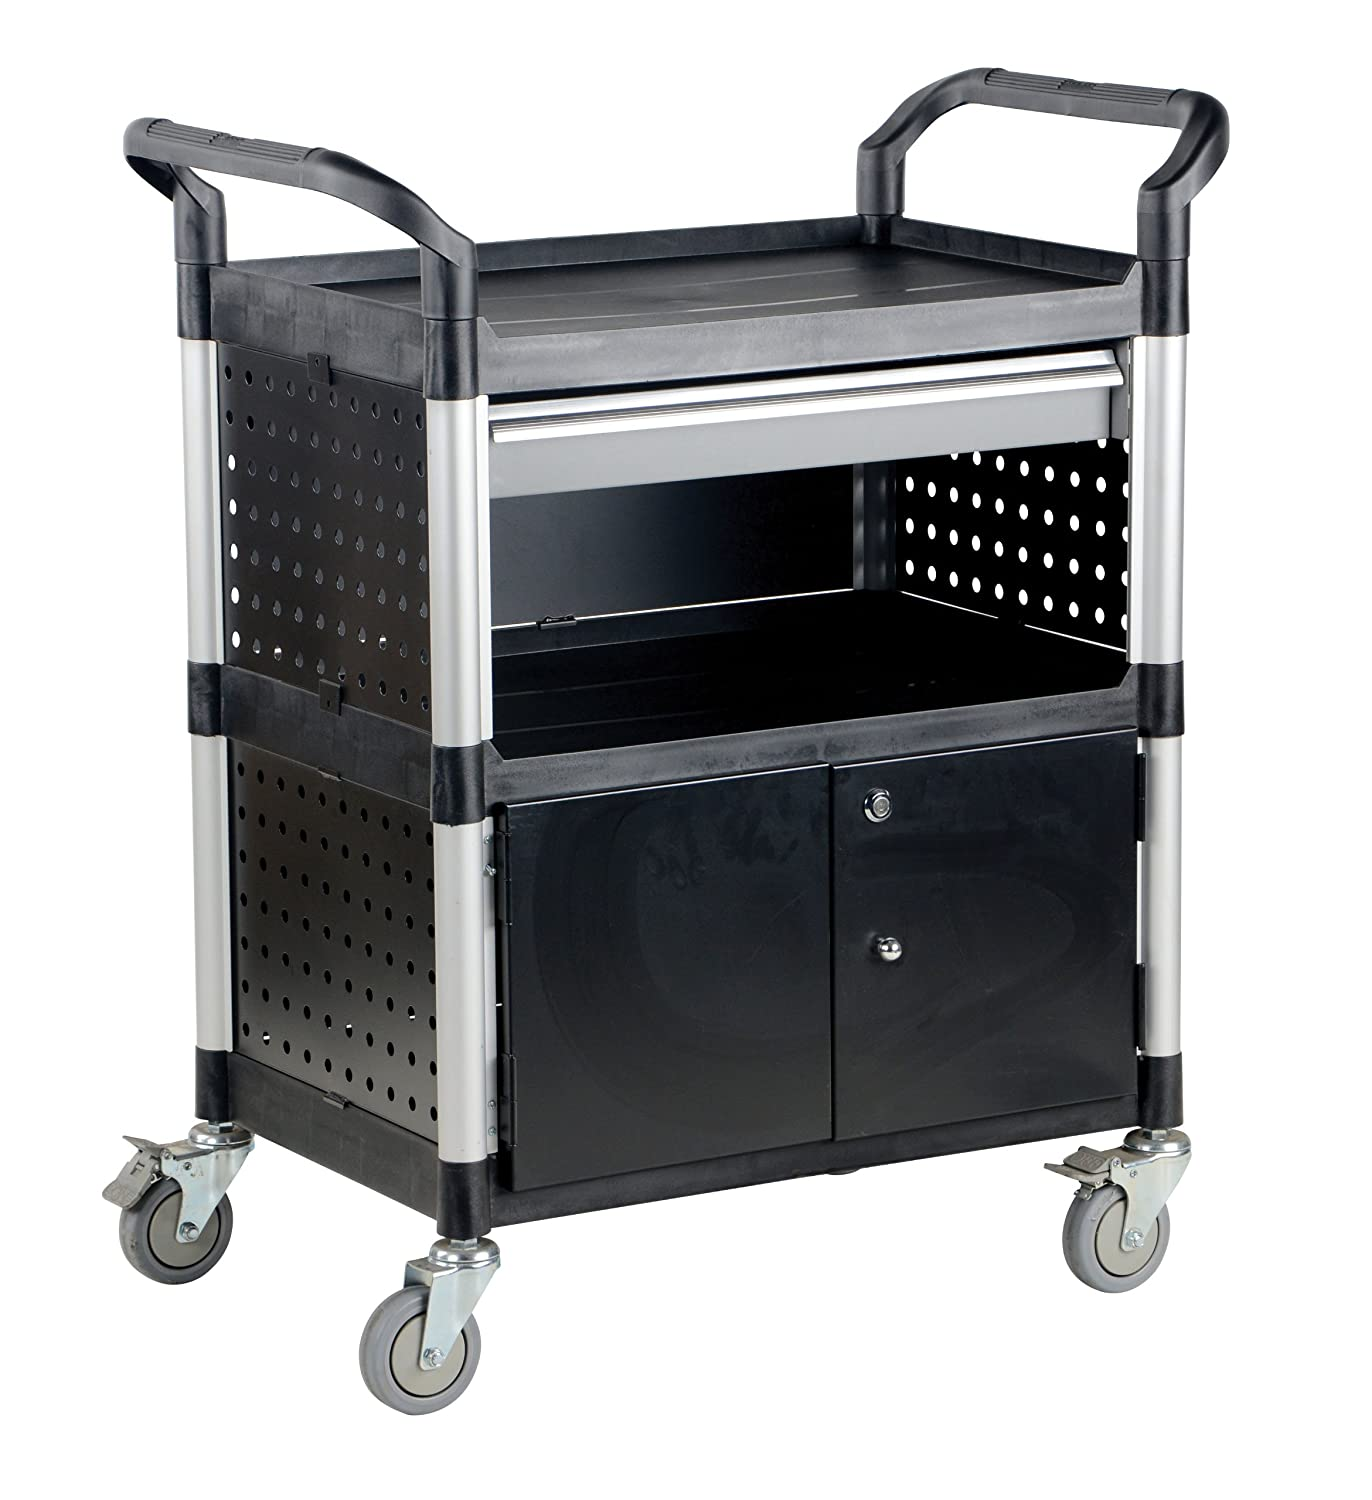 Vestil CSC-DD Food and Service Cart with One Drawer, Lower Cabinet and Panels on Three Sides, Black Plastic, 33